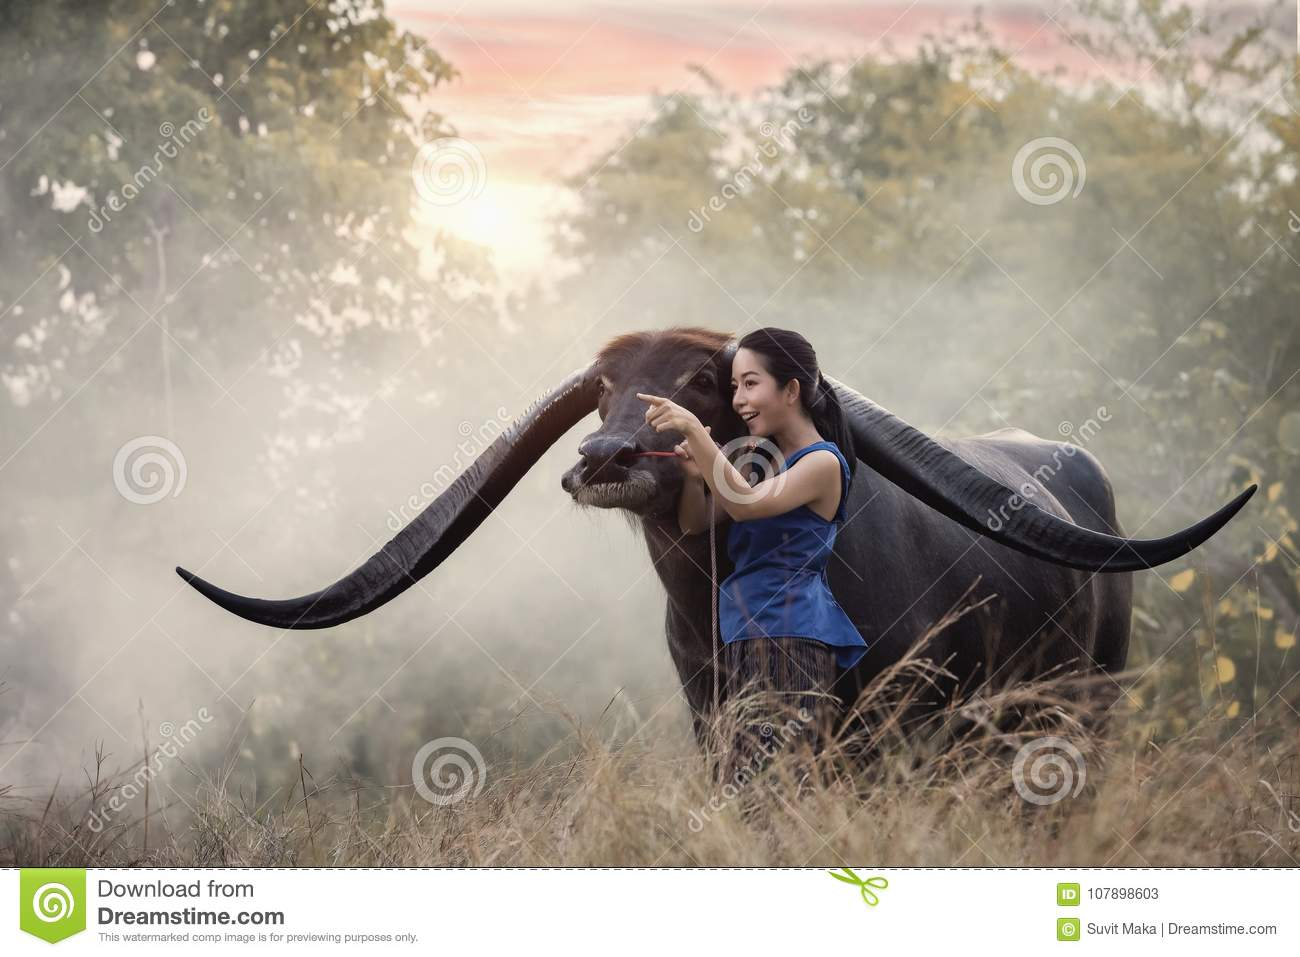 Woman with Buffalo in thailand